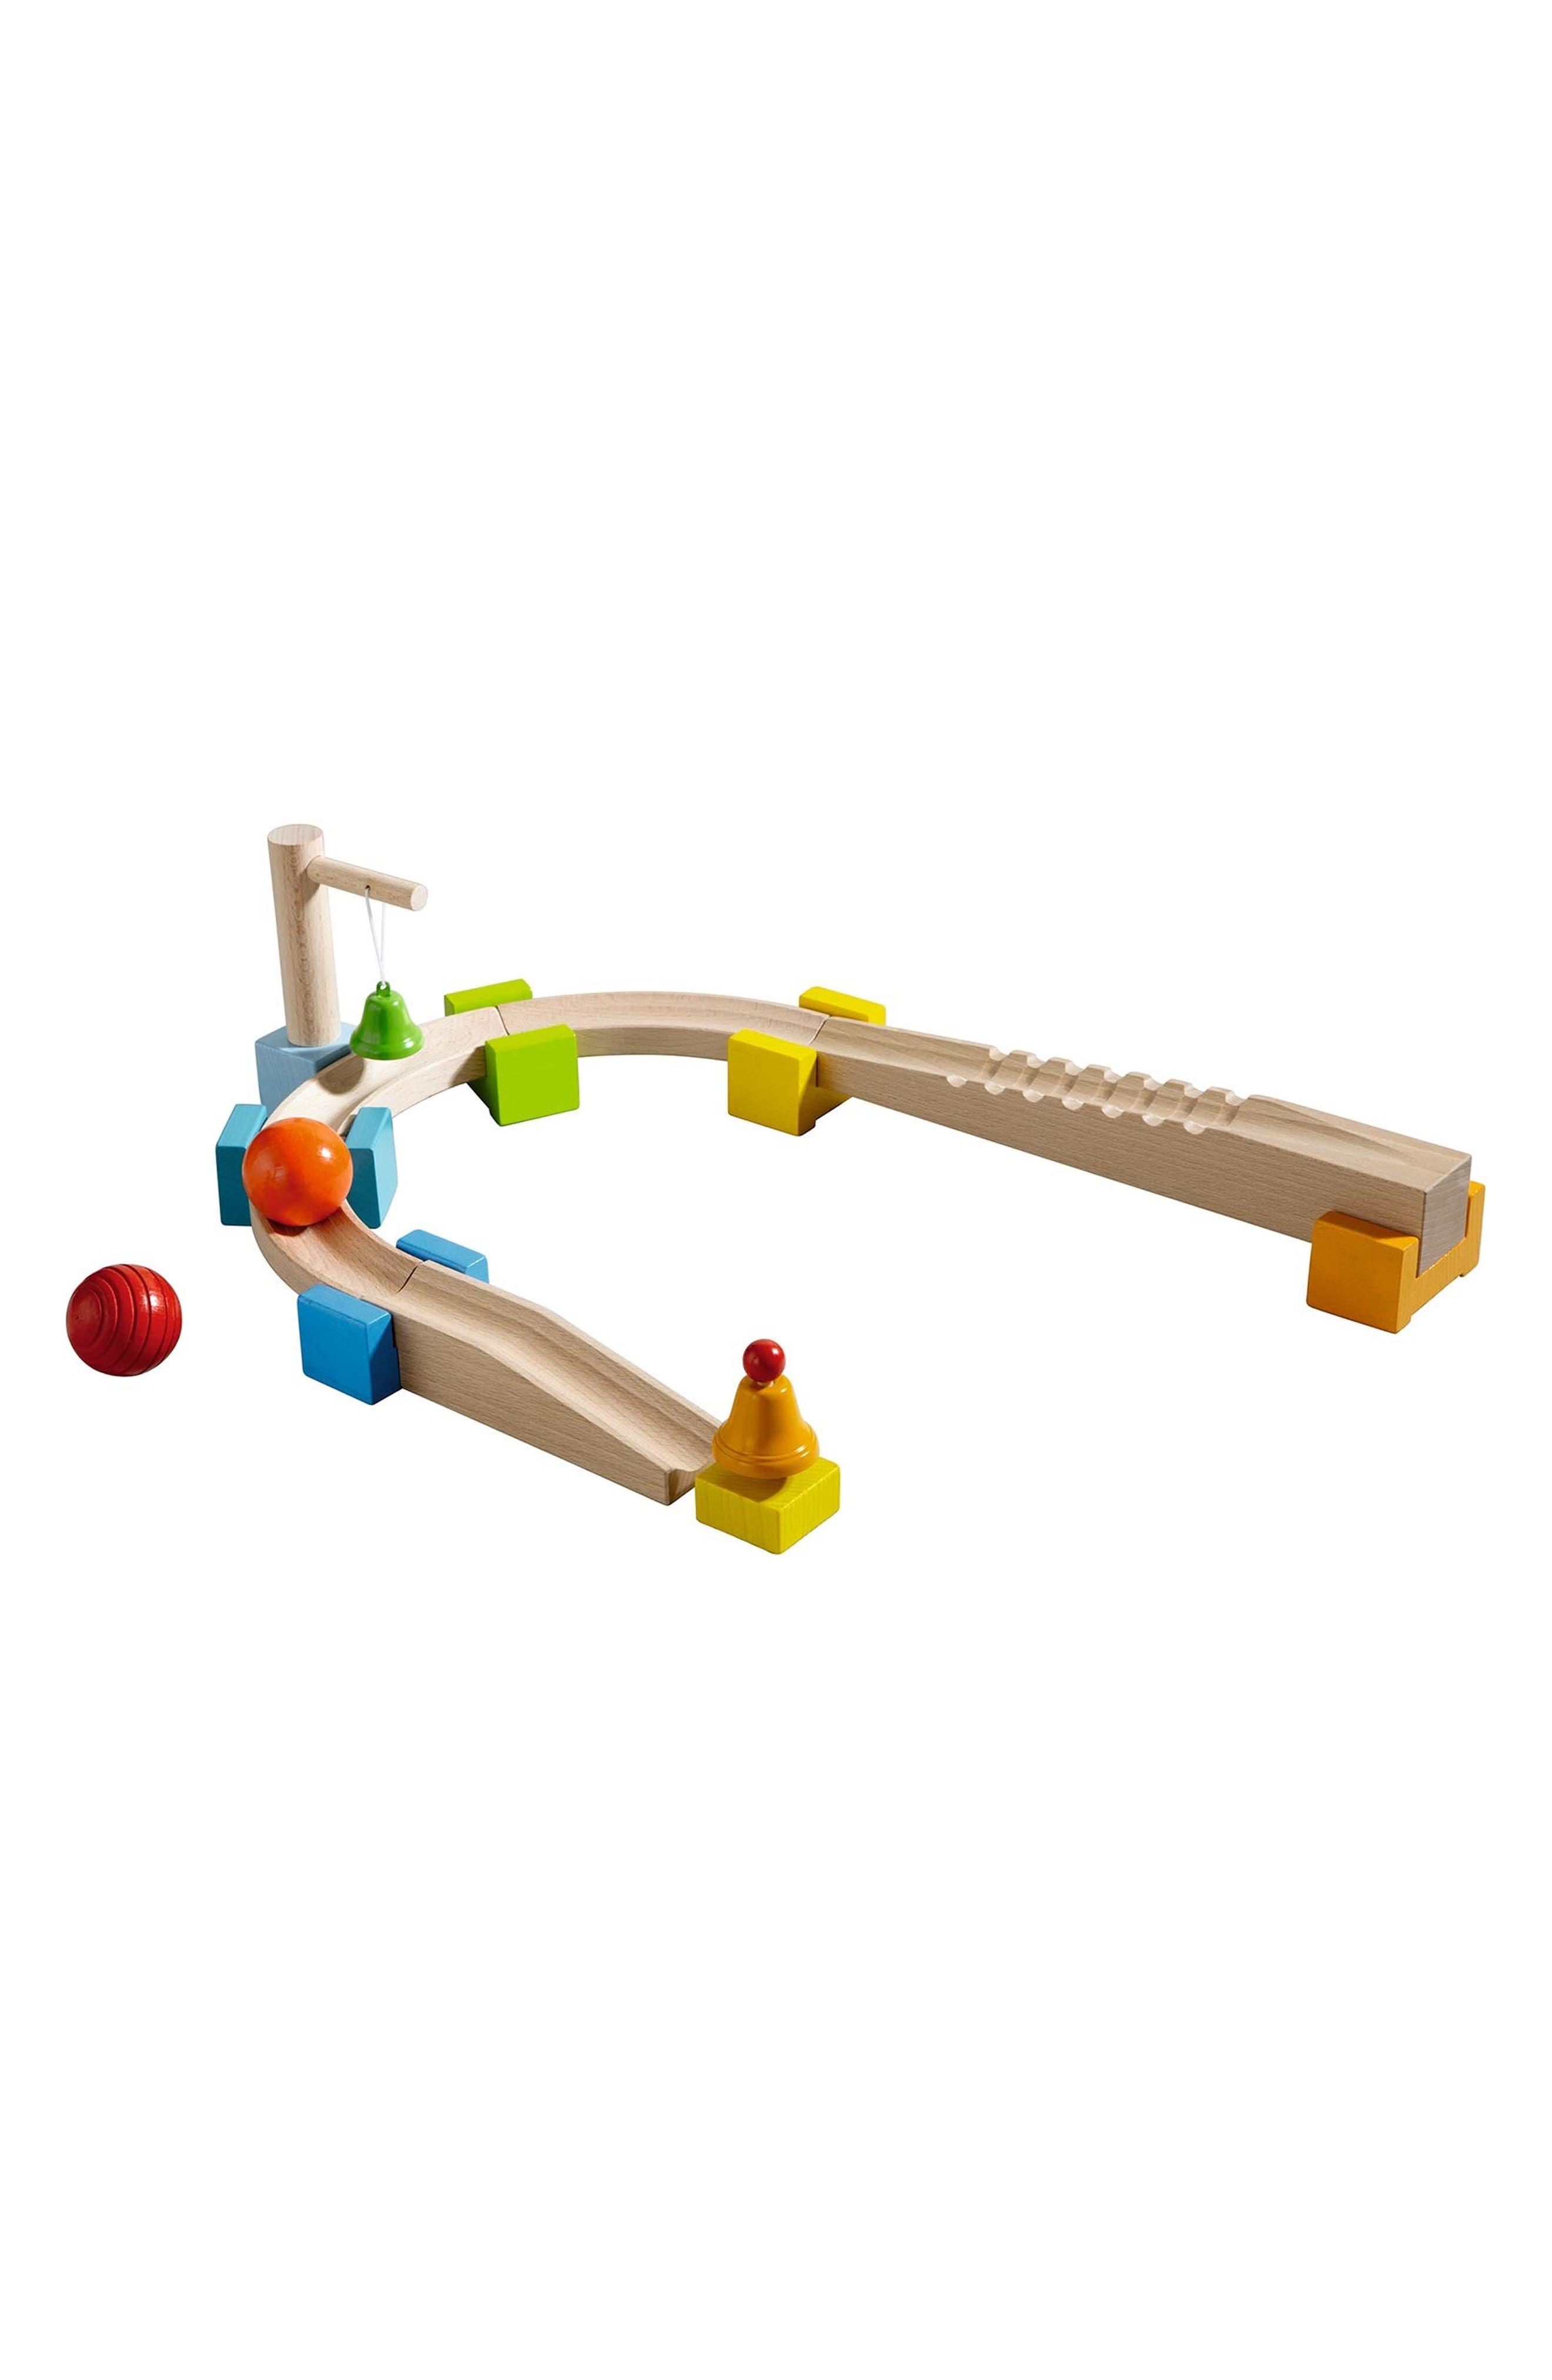 Main Image - HABA My First Ball Track - 14-Piece Basic Pack Chatter Track Play Set